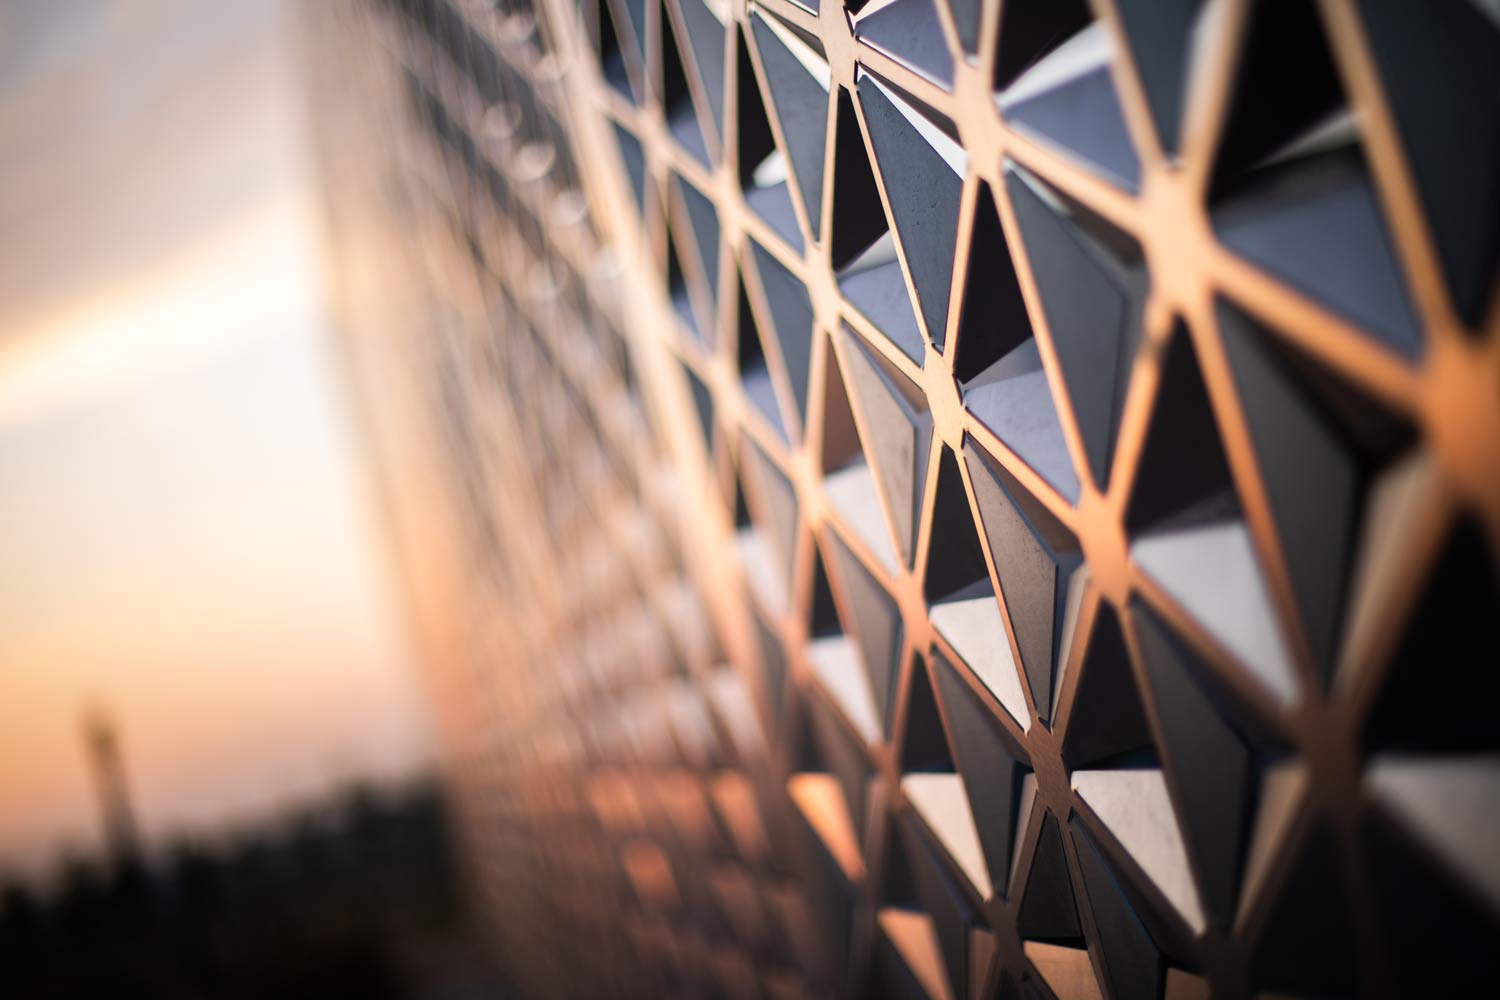 Vivid orange light paints a screen wall that is cut with an intricate pattern.